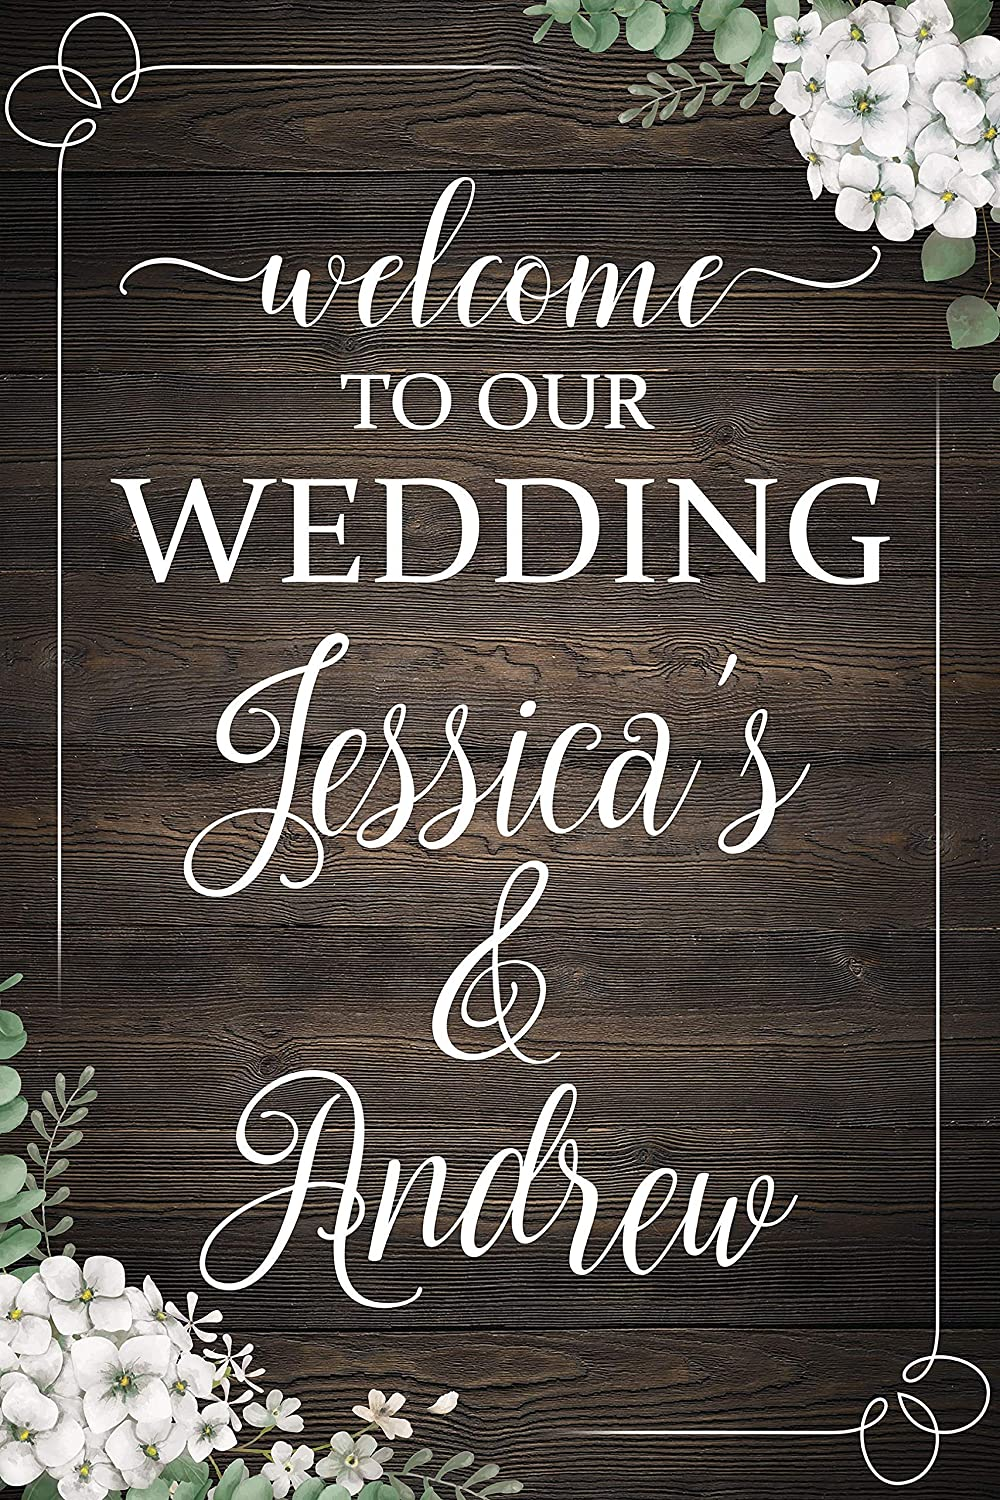 Rustic Wedding Signs.Rustic Wedding Party Welcome Sign Wooden Signs Wedding Party Decorations Rustic Wedding Signs Welcome Sign Wedding Reception Signs Handmade